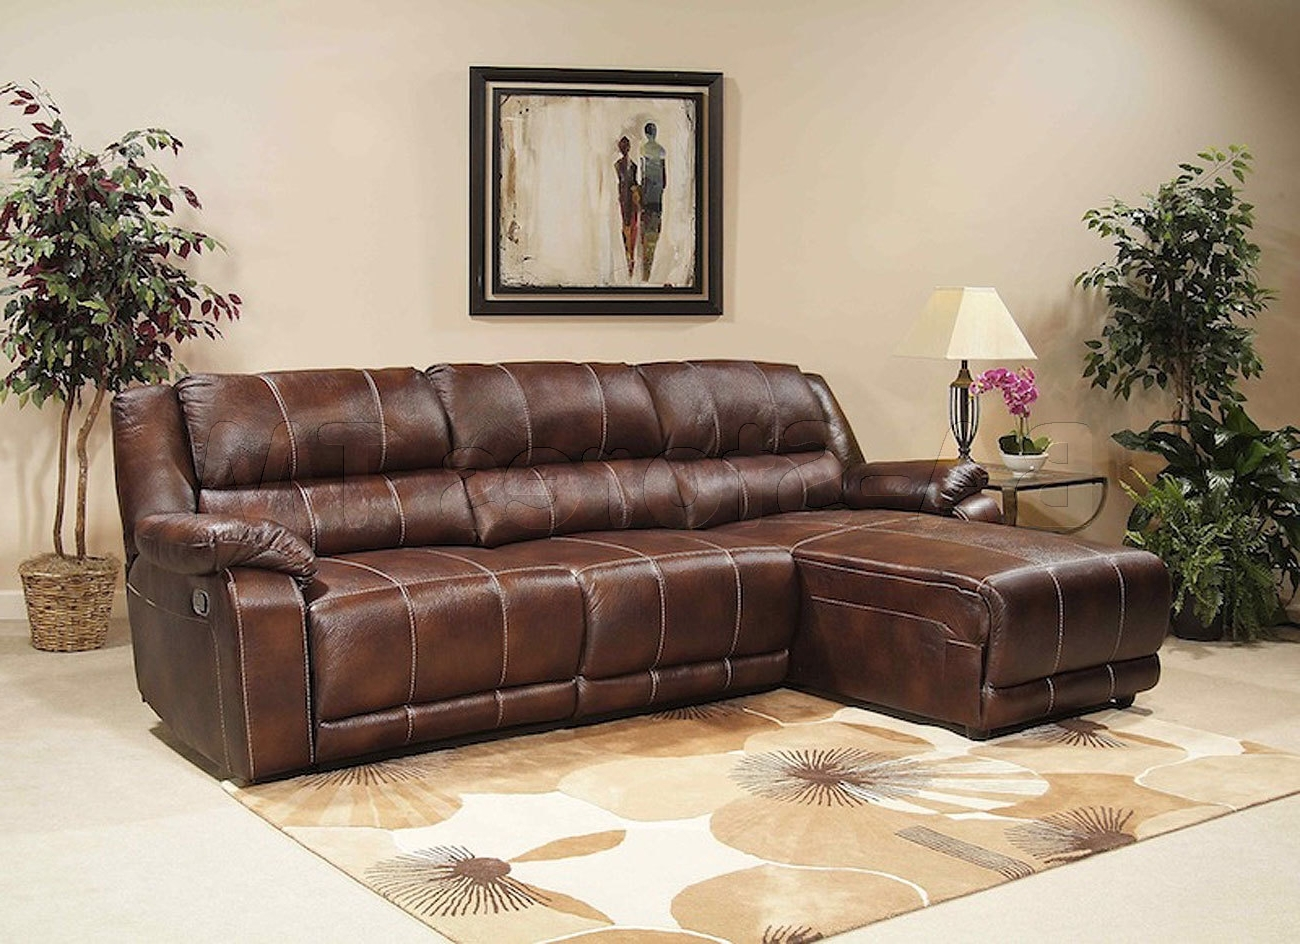 Leather Sectionals With Chaise And Recliner Within 2018 An Overview Of Sectional Sofas With Recliner – Elites Home Decor (View 10 of 15)